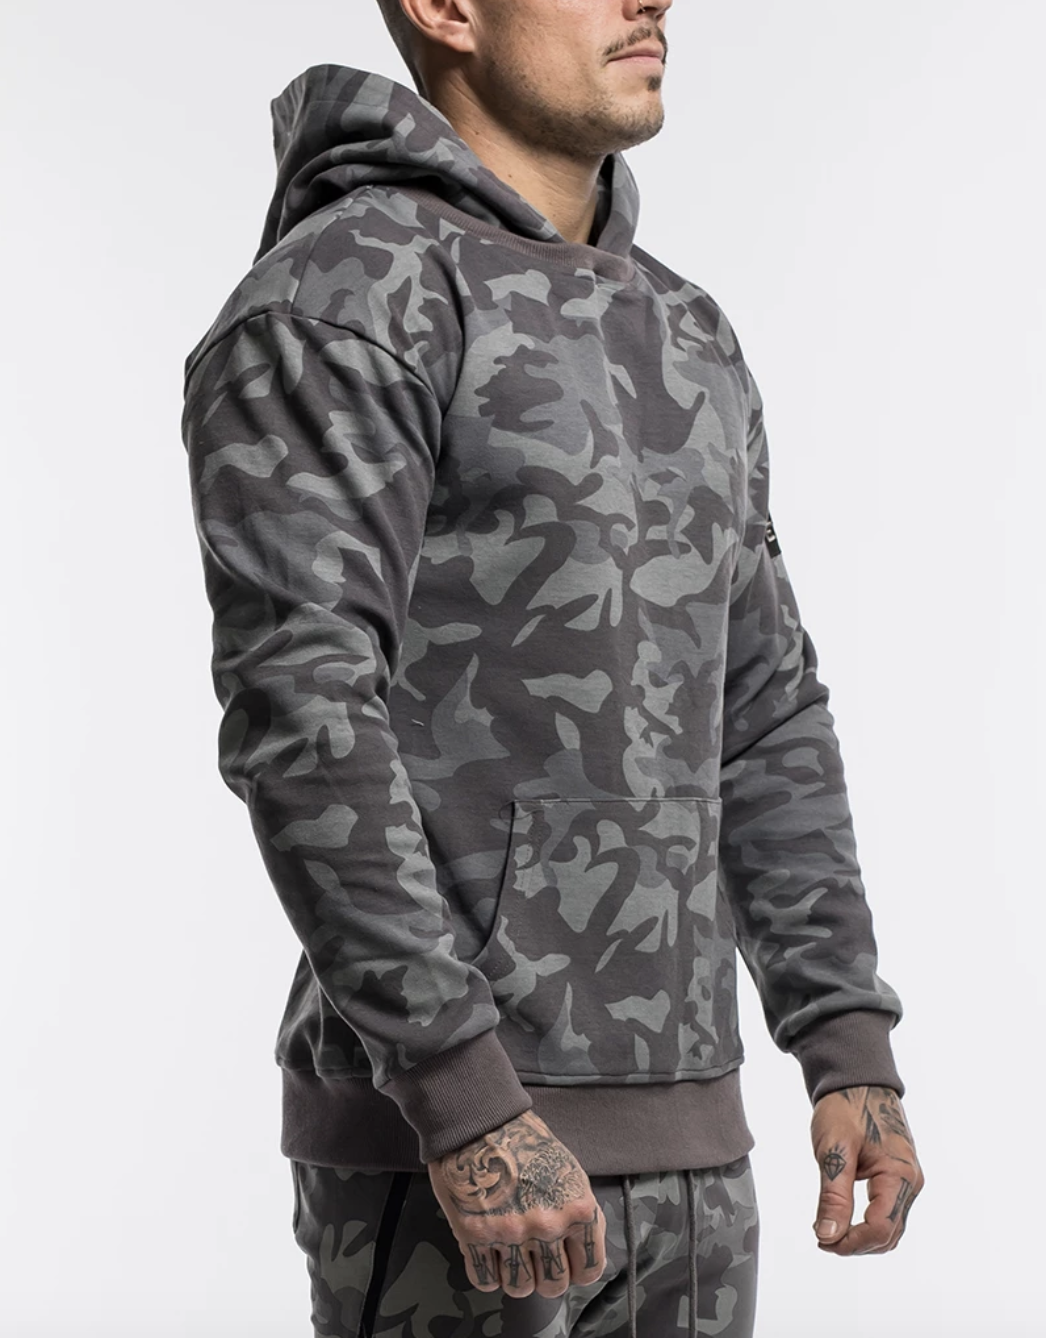 LEGACY CAMO HOODIE | 2 COLORS